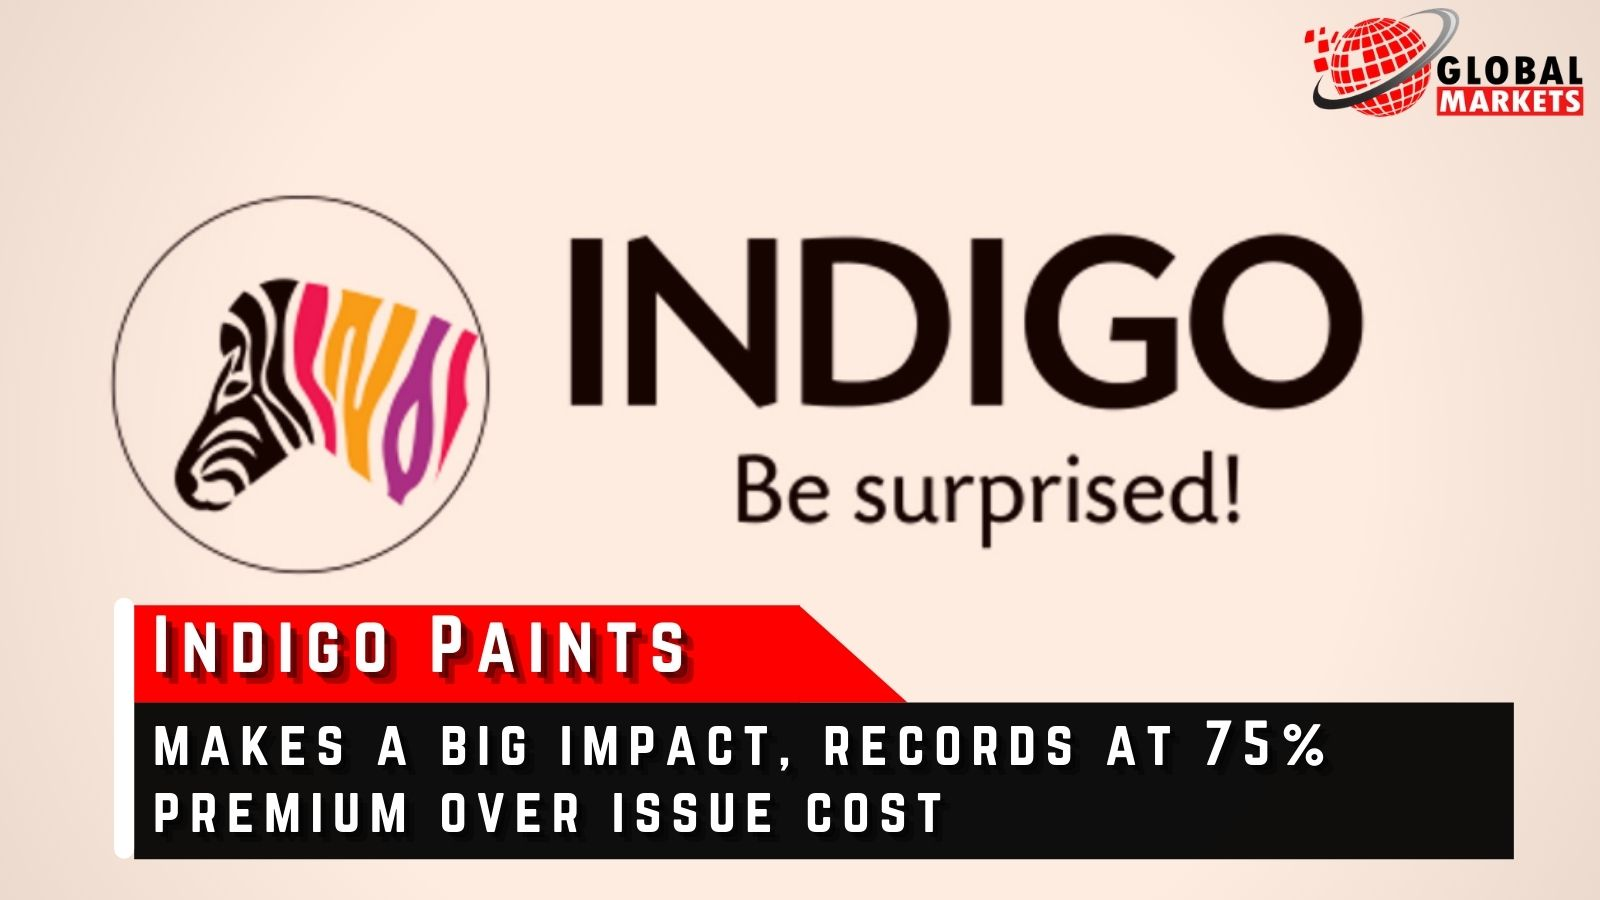 Indigo Paints Makes a Big Impact, Records at 75% Premium Over Issue Cost